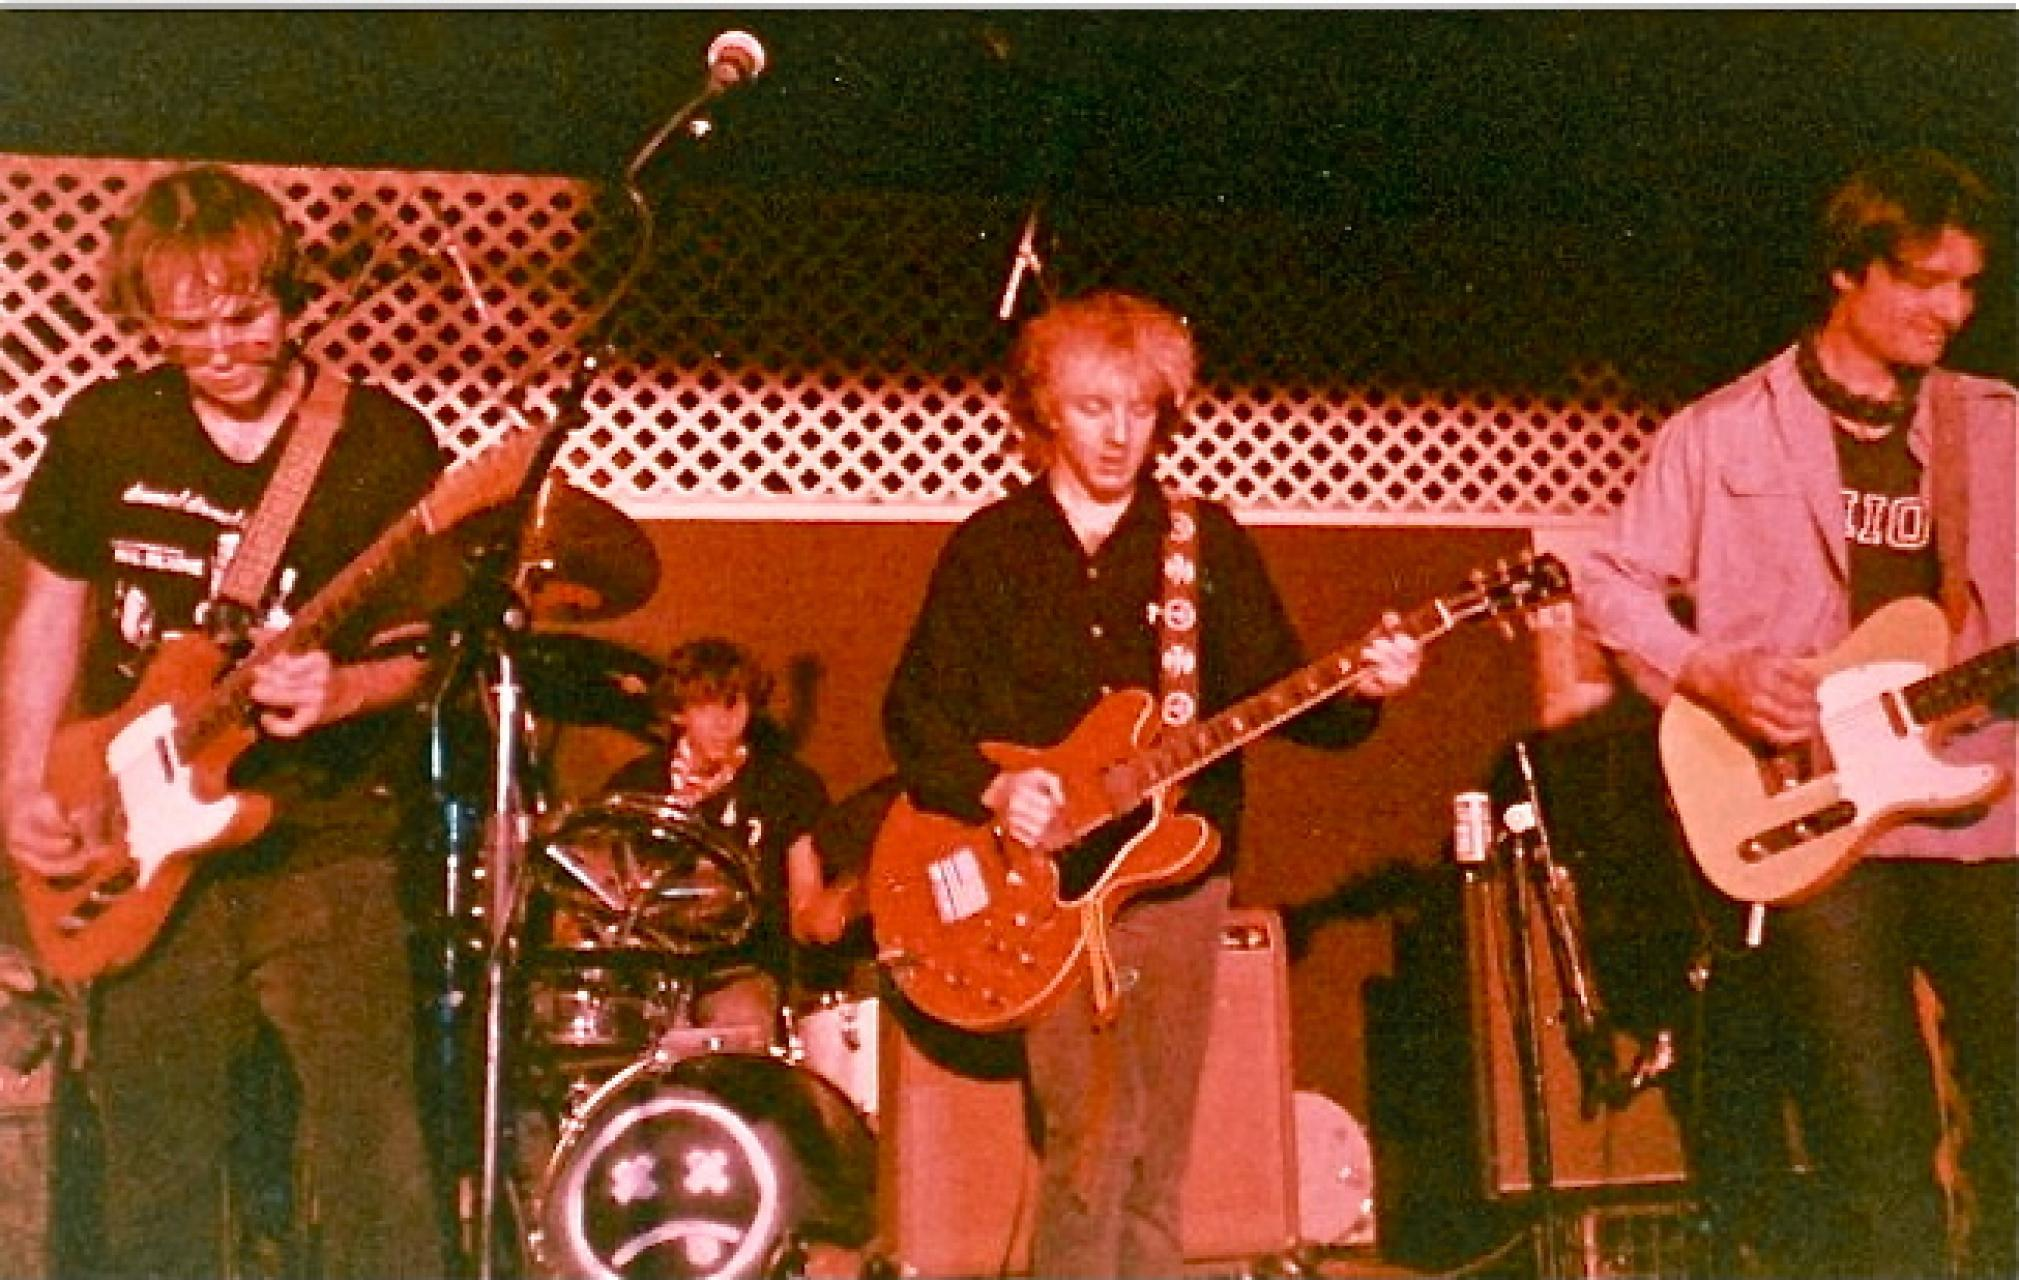 Mitch Easter (center) performing with the dB's at the Cat's Cradle. | Photo courtesy: http://dbs-repercussion.blogspot.com